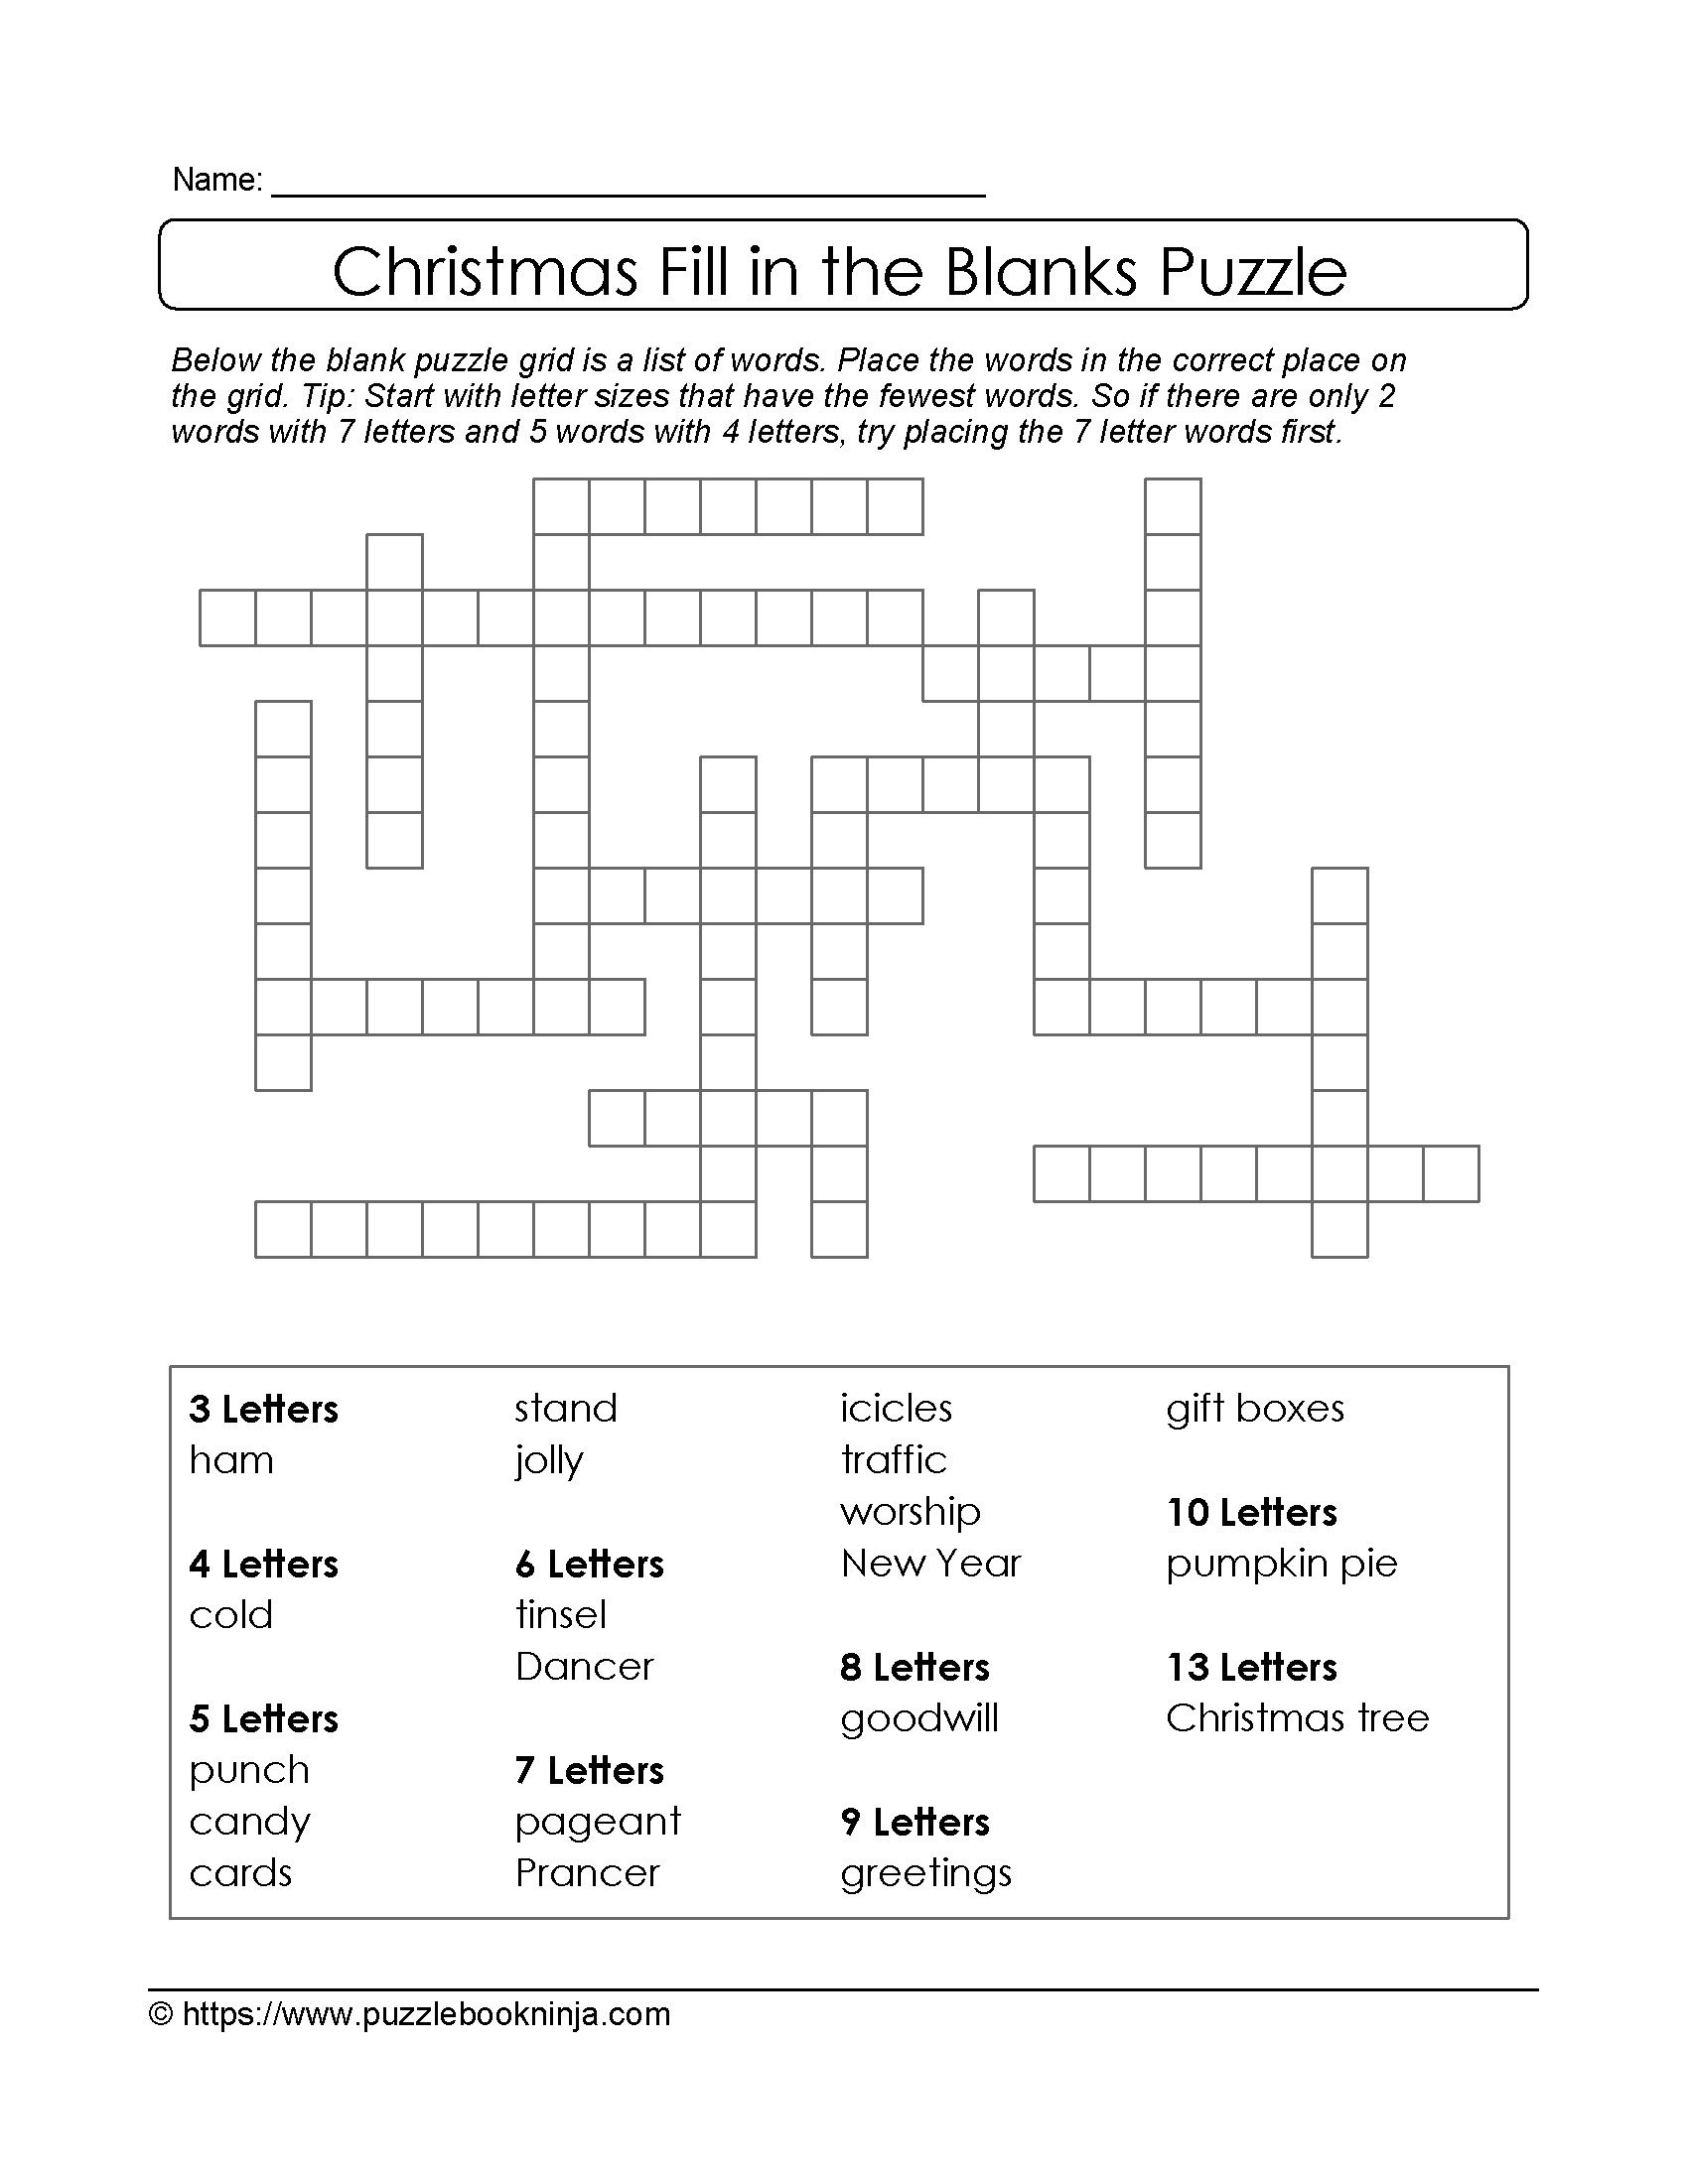 Freebie Xmas Puzzle To Print. Fill In The Blanks Crossword Like - Fill In Crossword Puzzles Printable